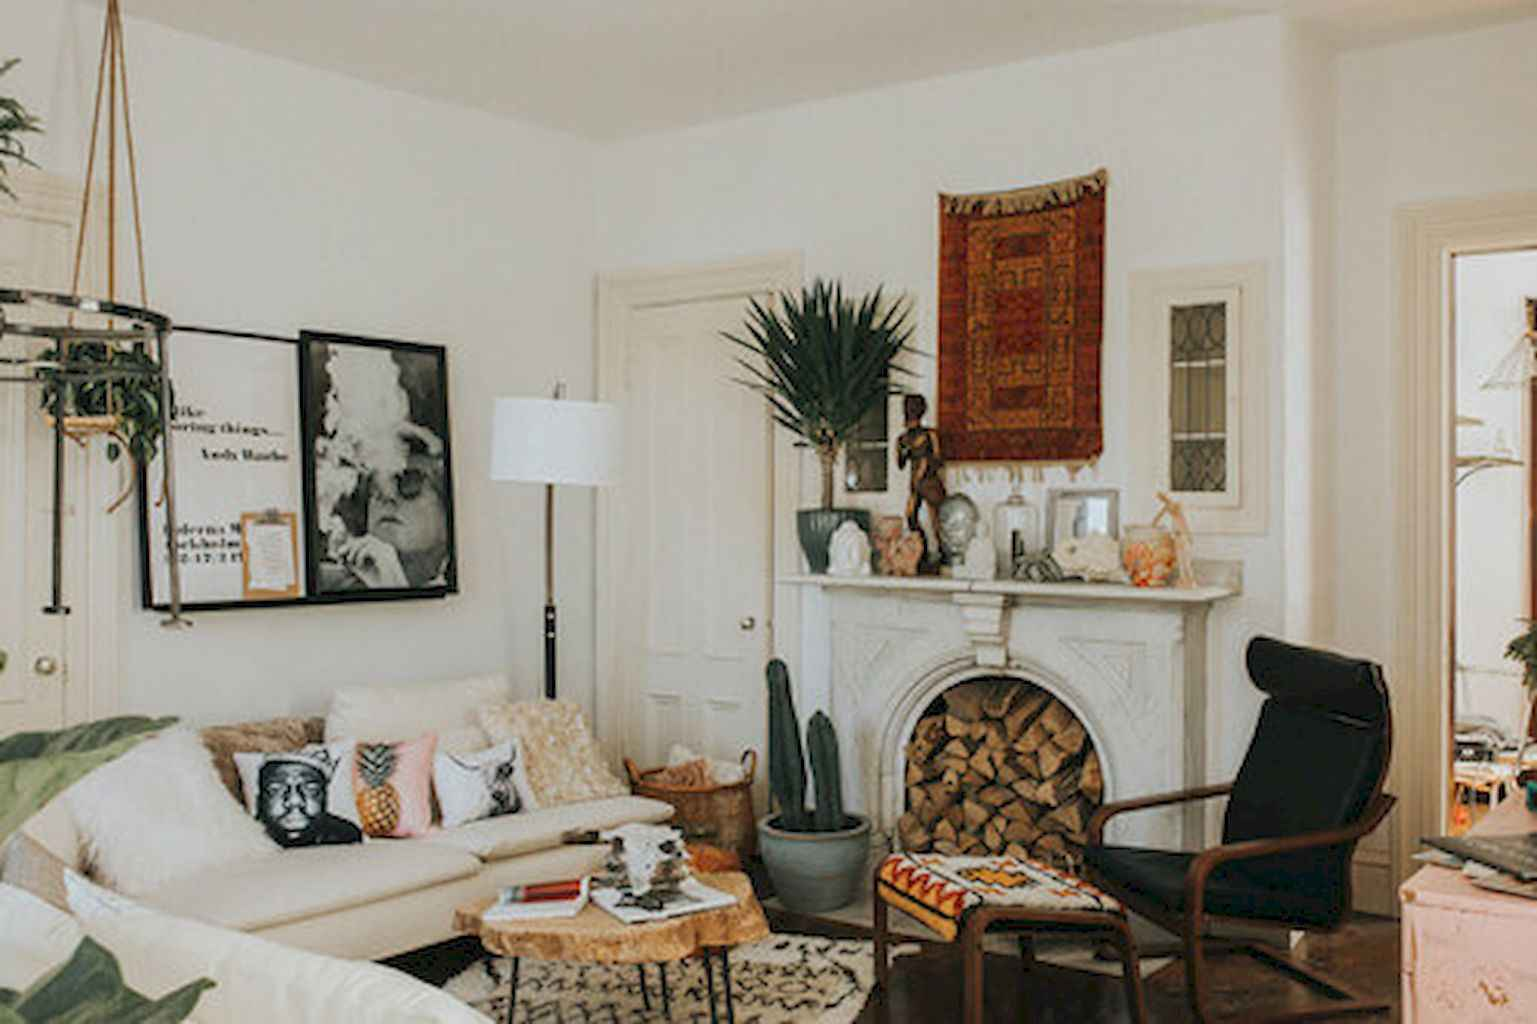 Clever college apartment decorating ideas on a budget (39)